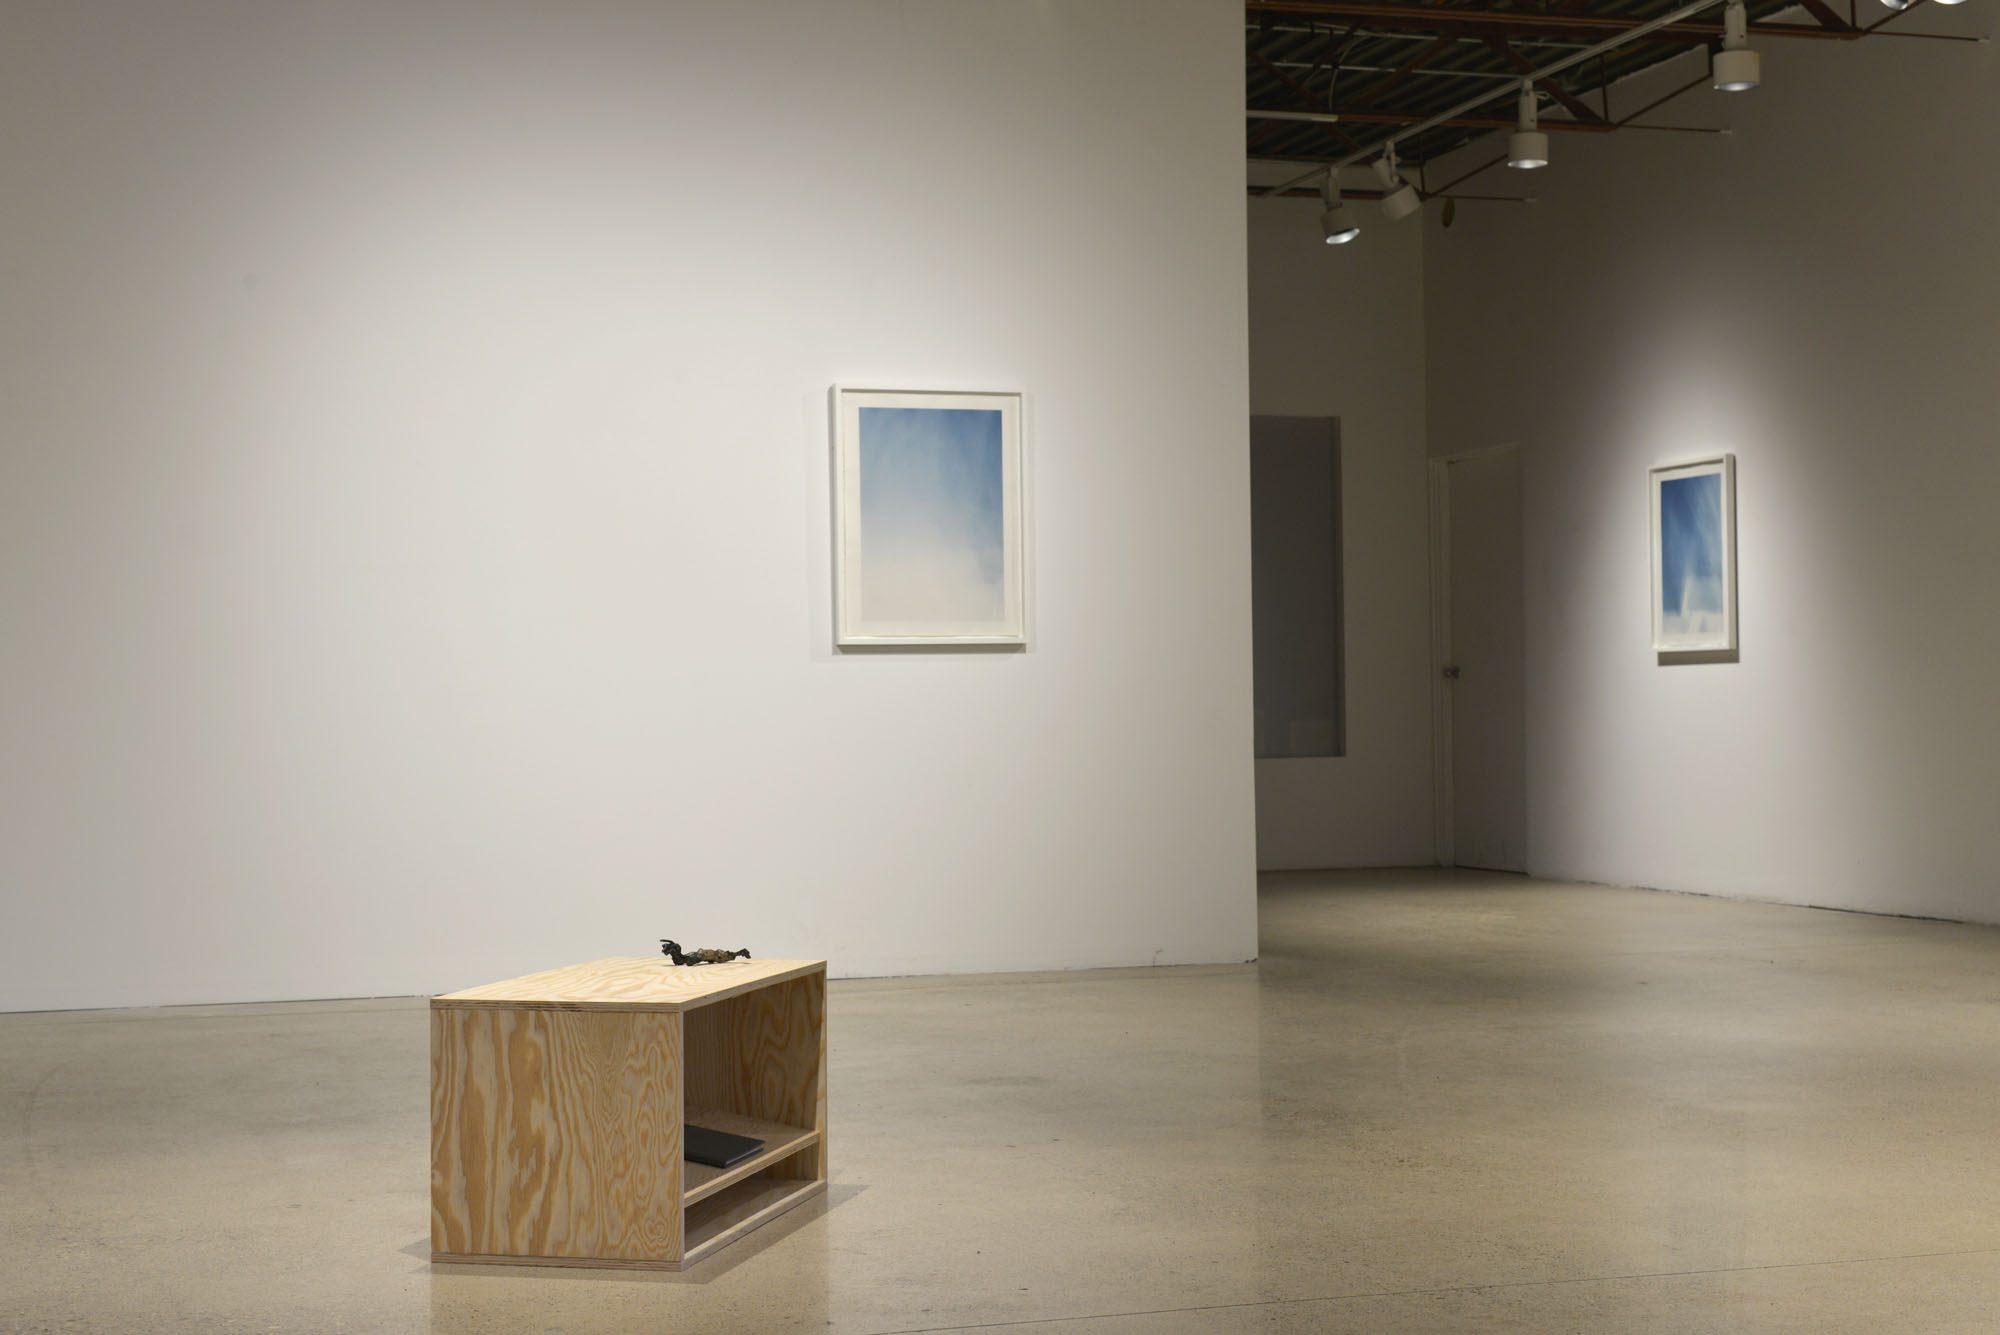 Troy Gronsdahl, The same as the shape of an object, Exhibition documentation